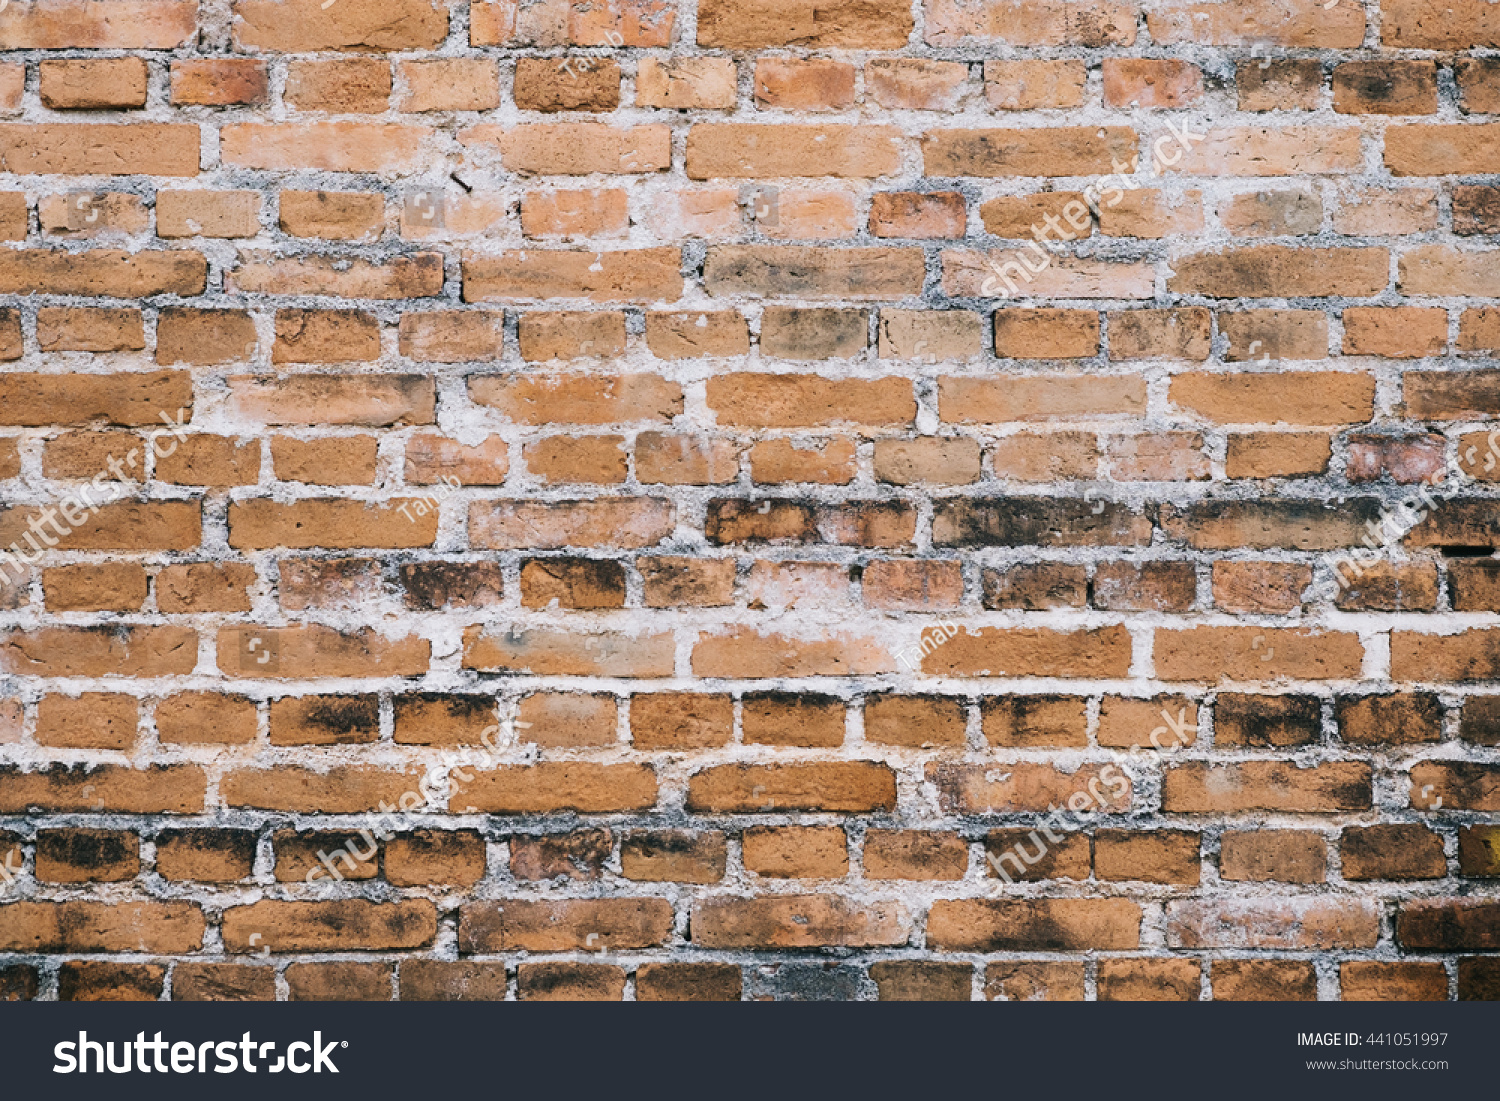 Dark brick wall background used background stock photo for Material design space